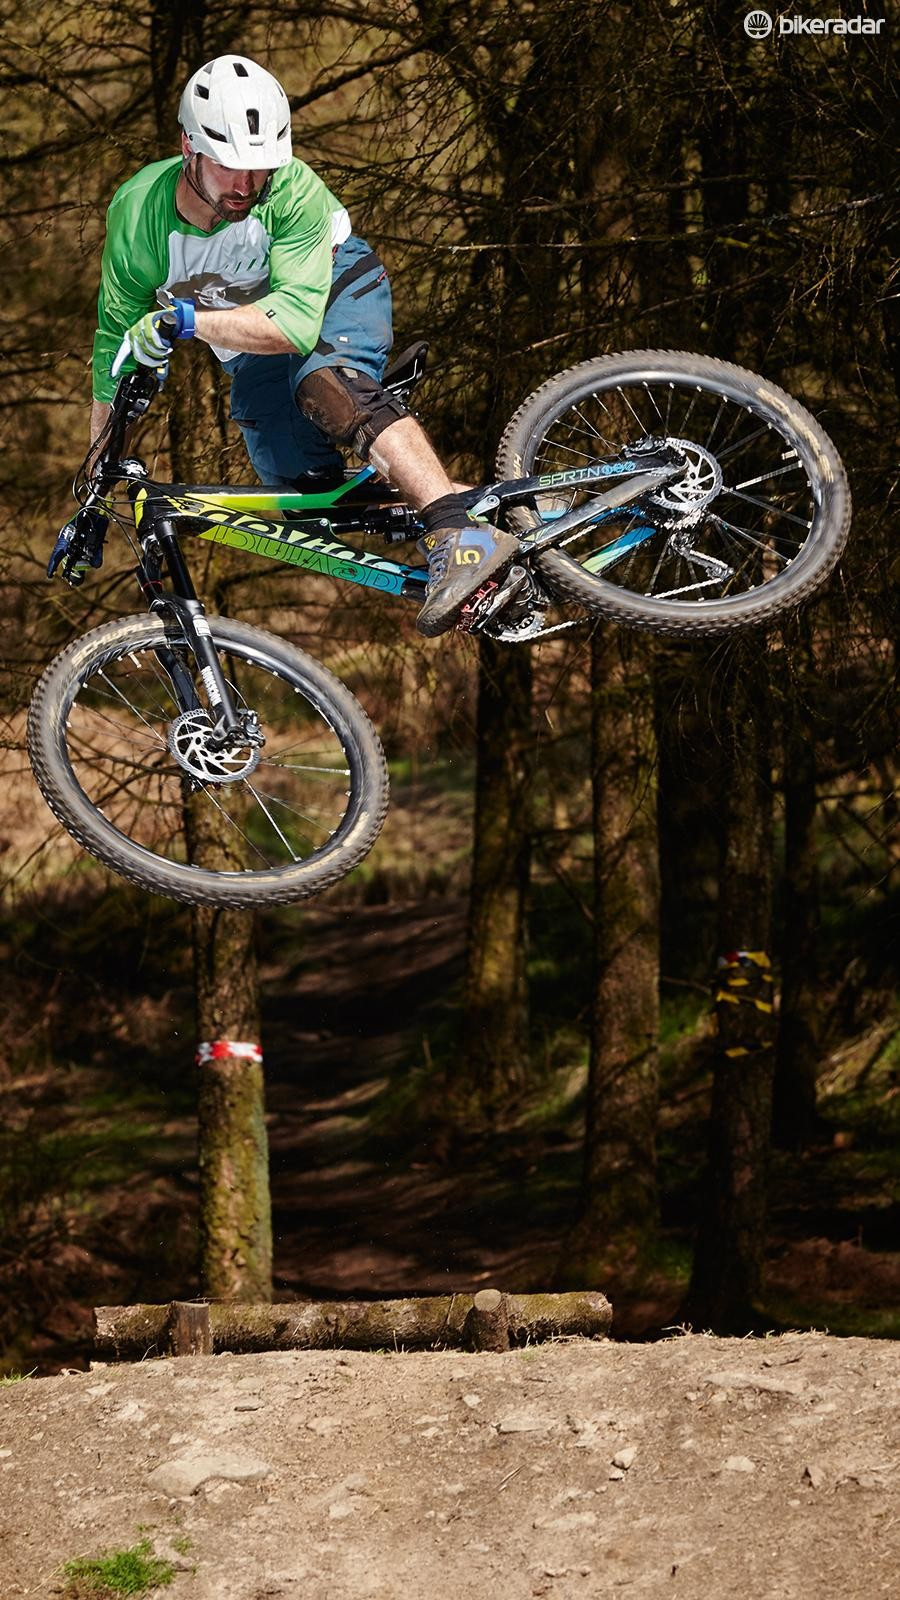 Devinci's mostly carbon frame set saves a claimed 750g over the Canadian made mostly alloy frame